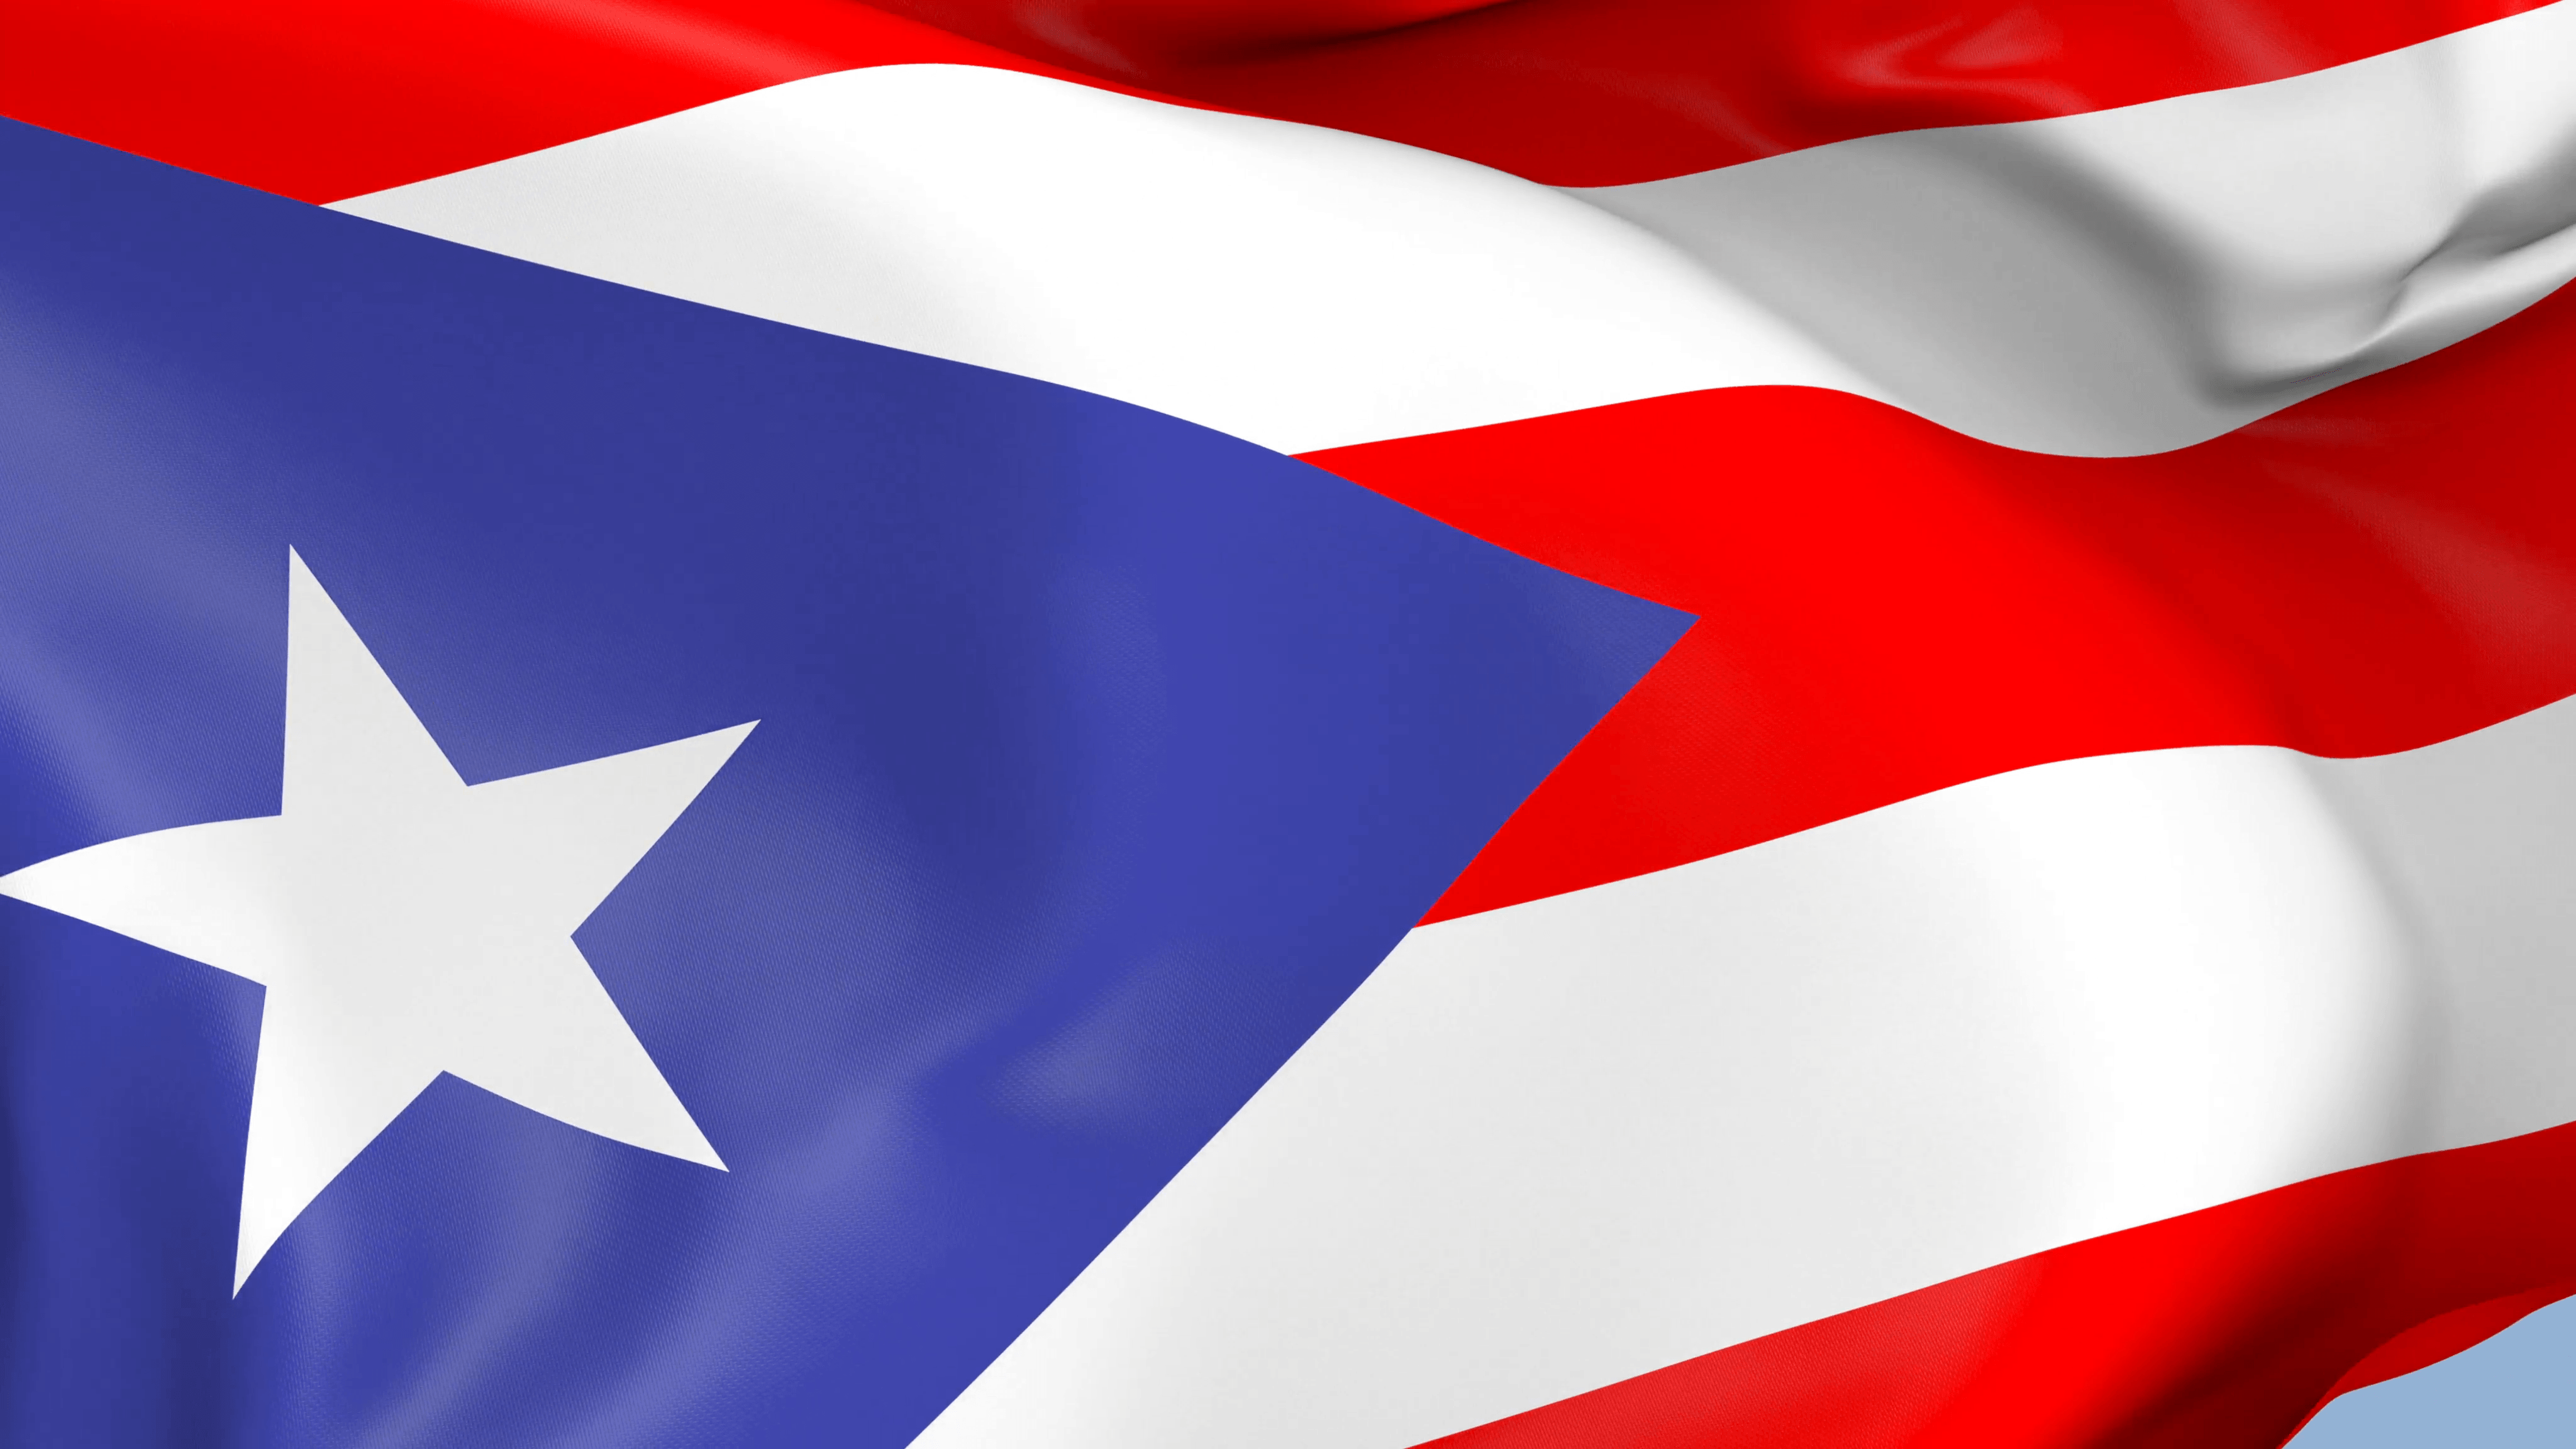 Puerto Rico Waving Flag Backgrounds Loop Motion Backgrounds